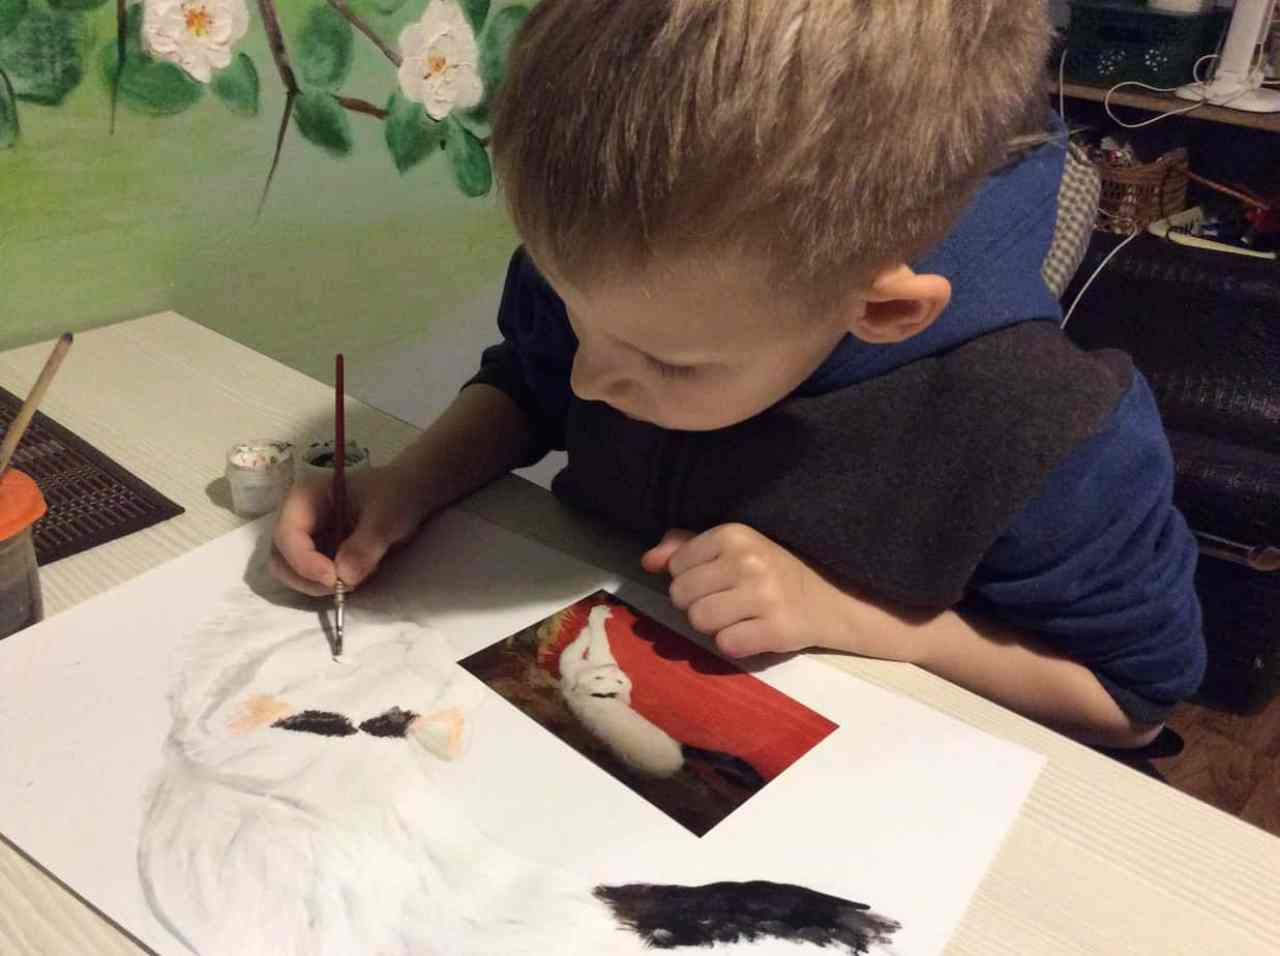 Helping animals through his paintings.